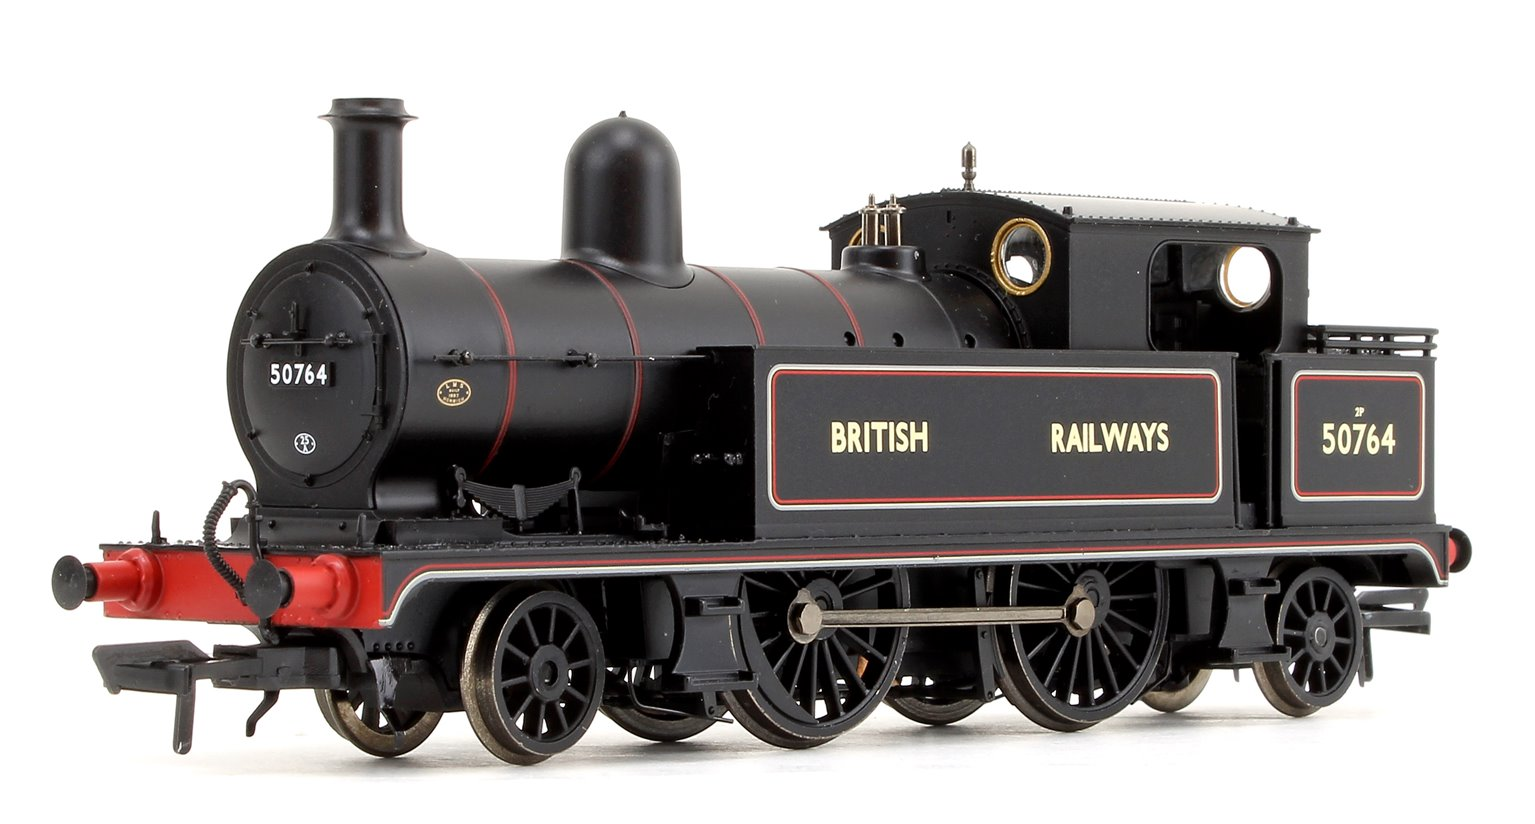 L&YR 2-4-2 Tank British Railways Lined Black Locomotive No.50764